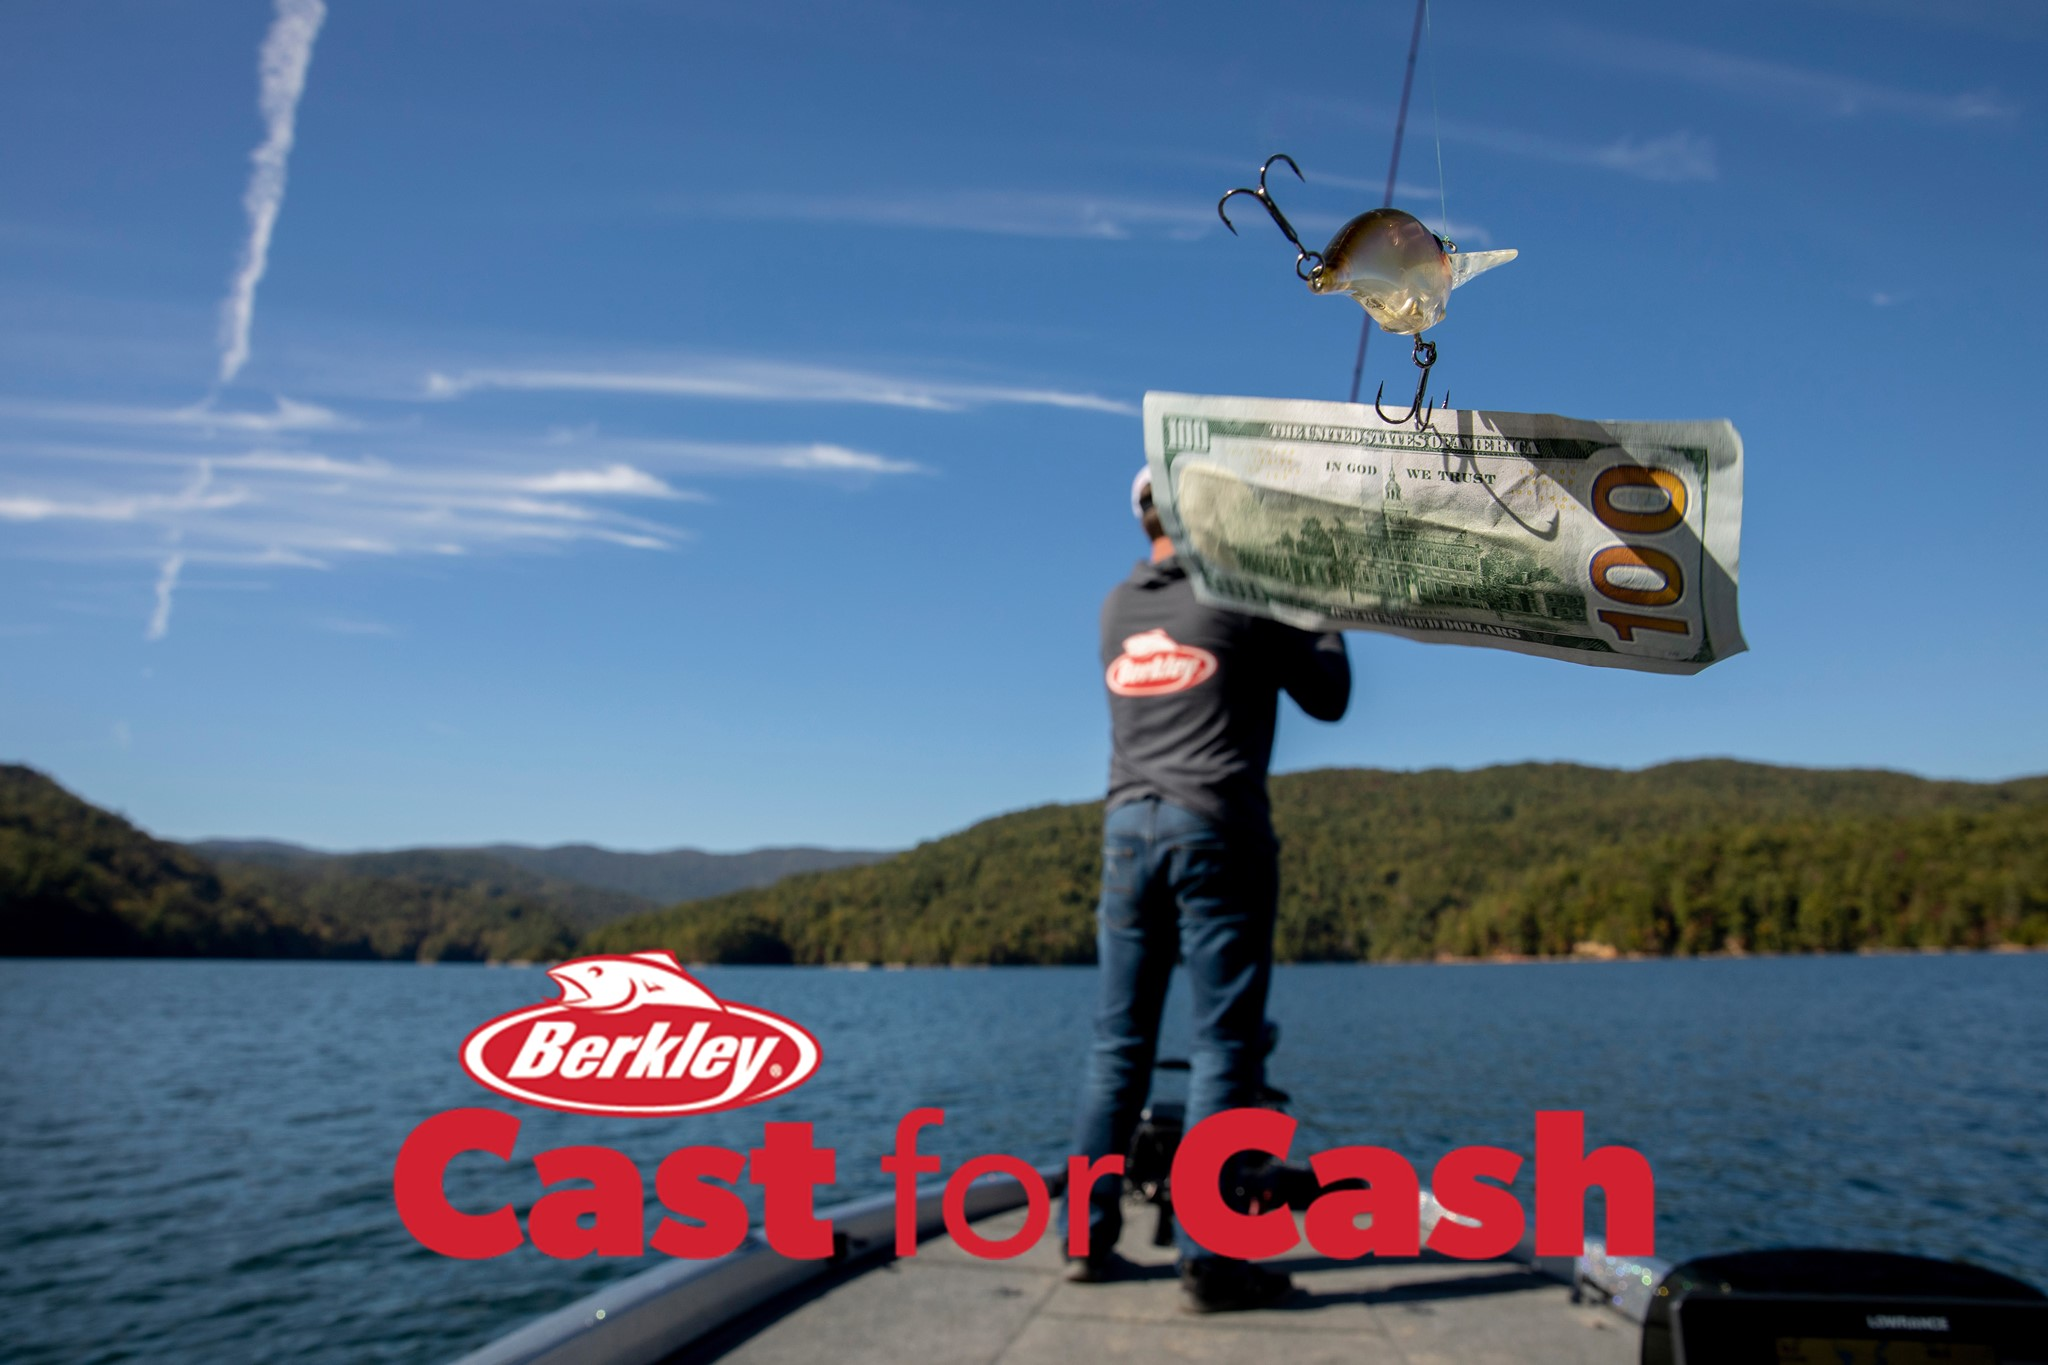 Berkley Cast for Cash